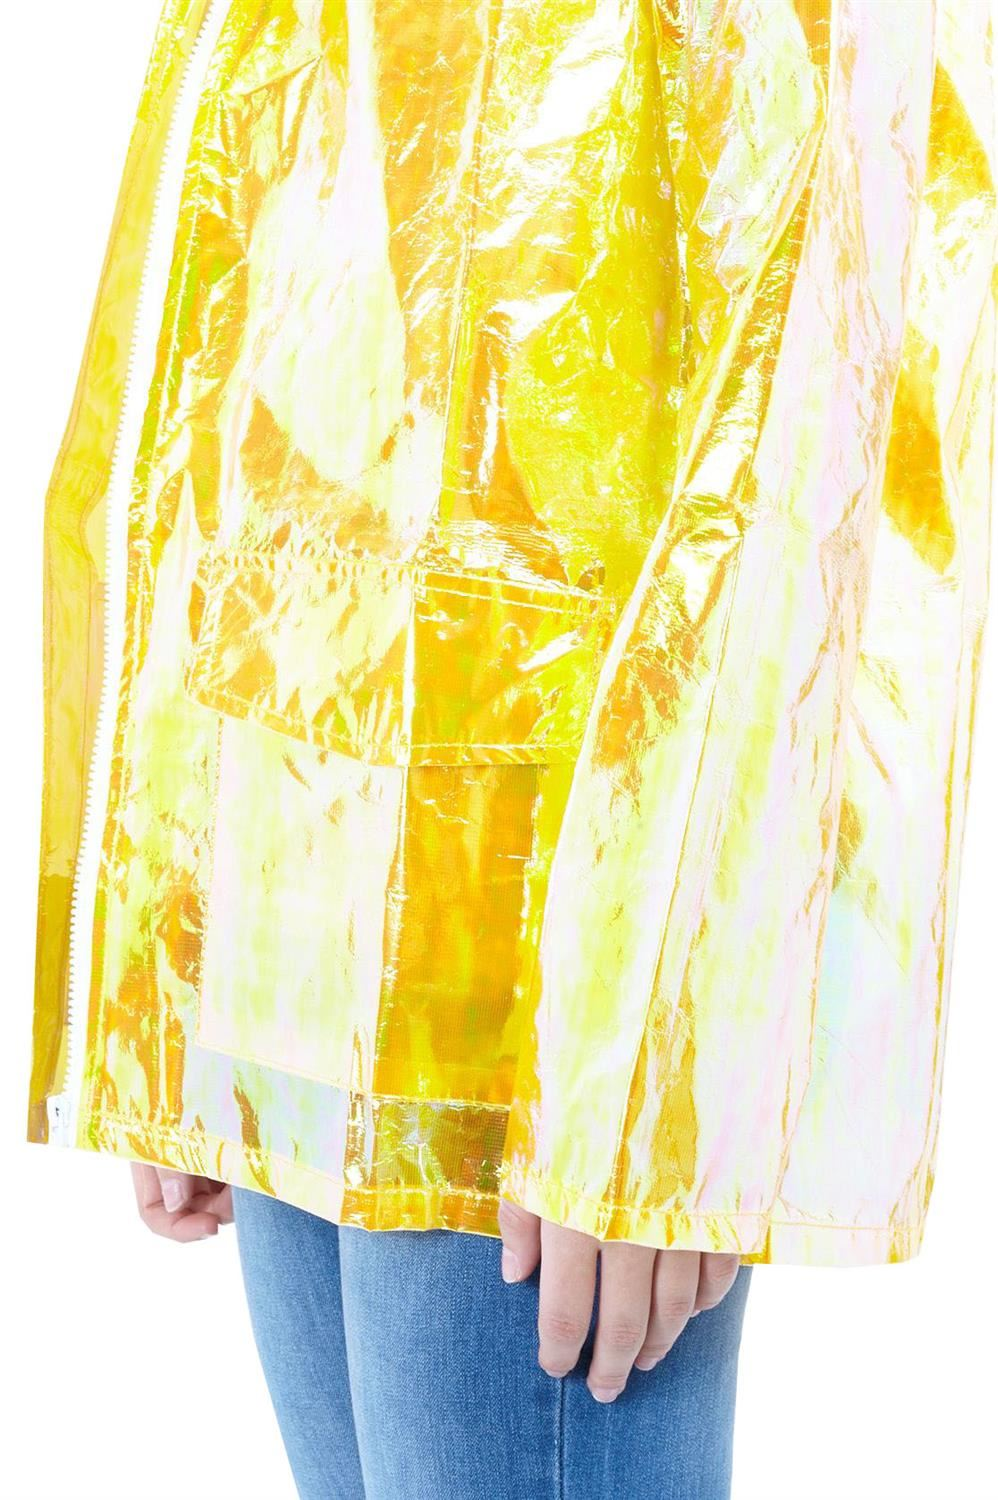 Womens-Waterproof-Holographic-Zipped-Neon-Festival-Mac-Jacket-Parka-Raincoat thumbnail 18